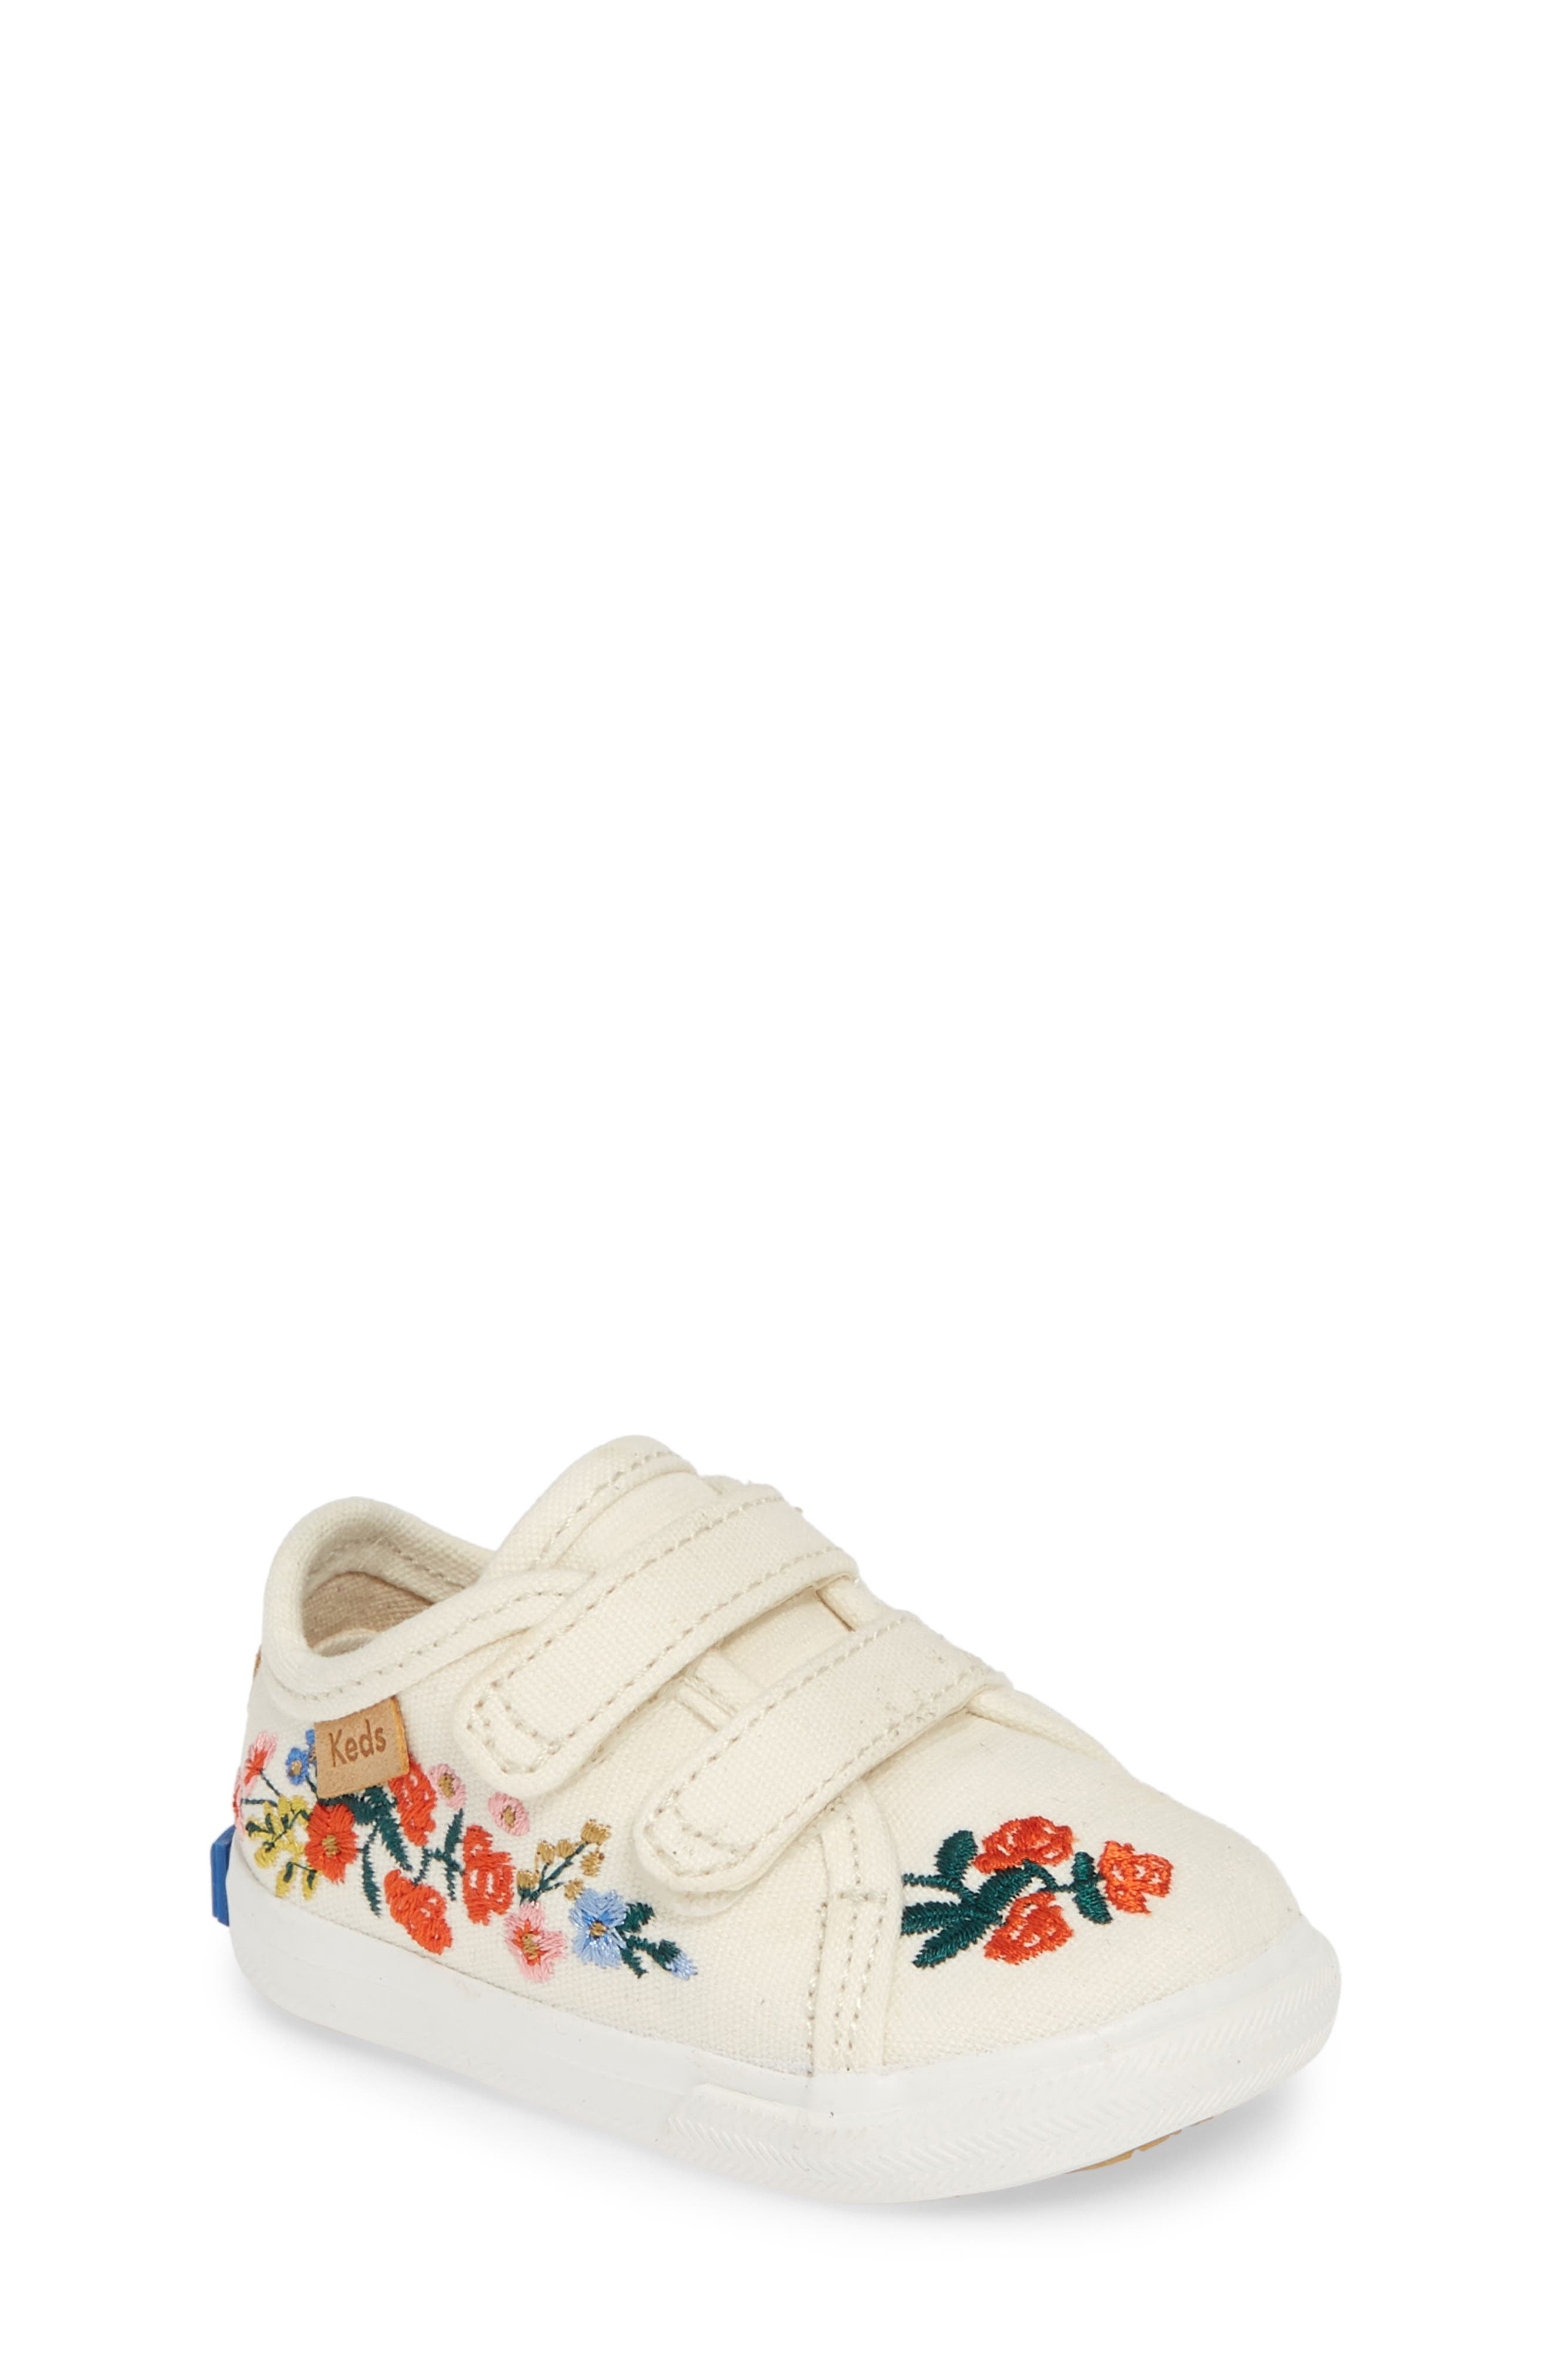 KEDS<SUP>®</SUP> x Rifle Paper Co. Double Up Crib Shoe, Main, color, VINES